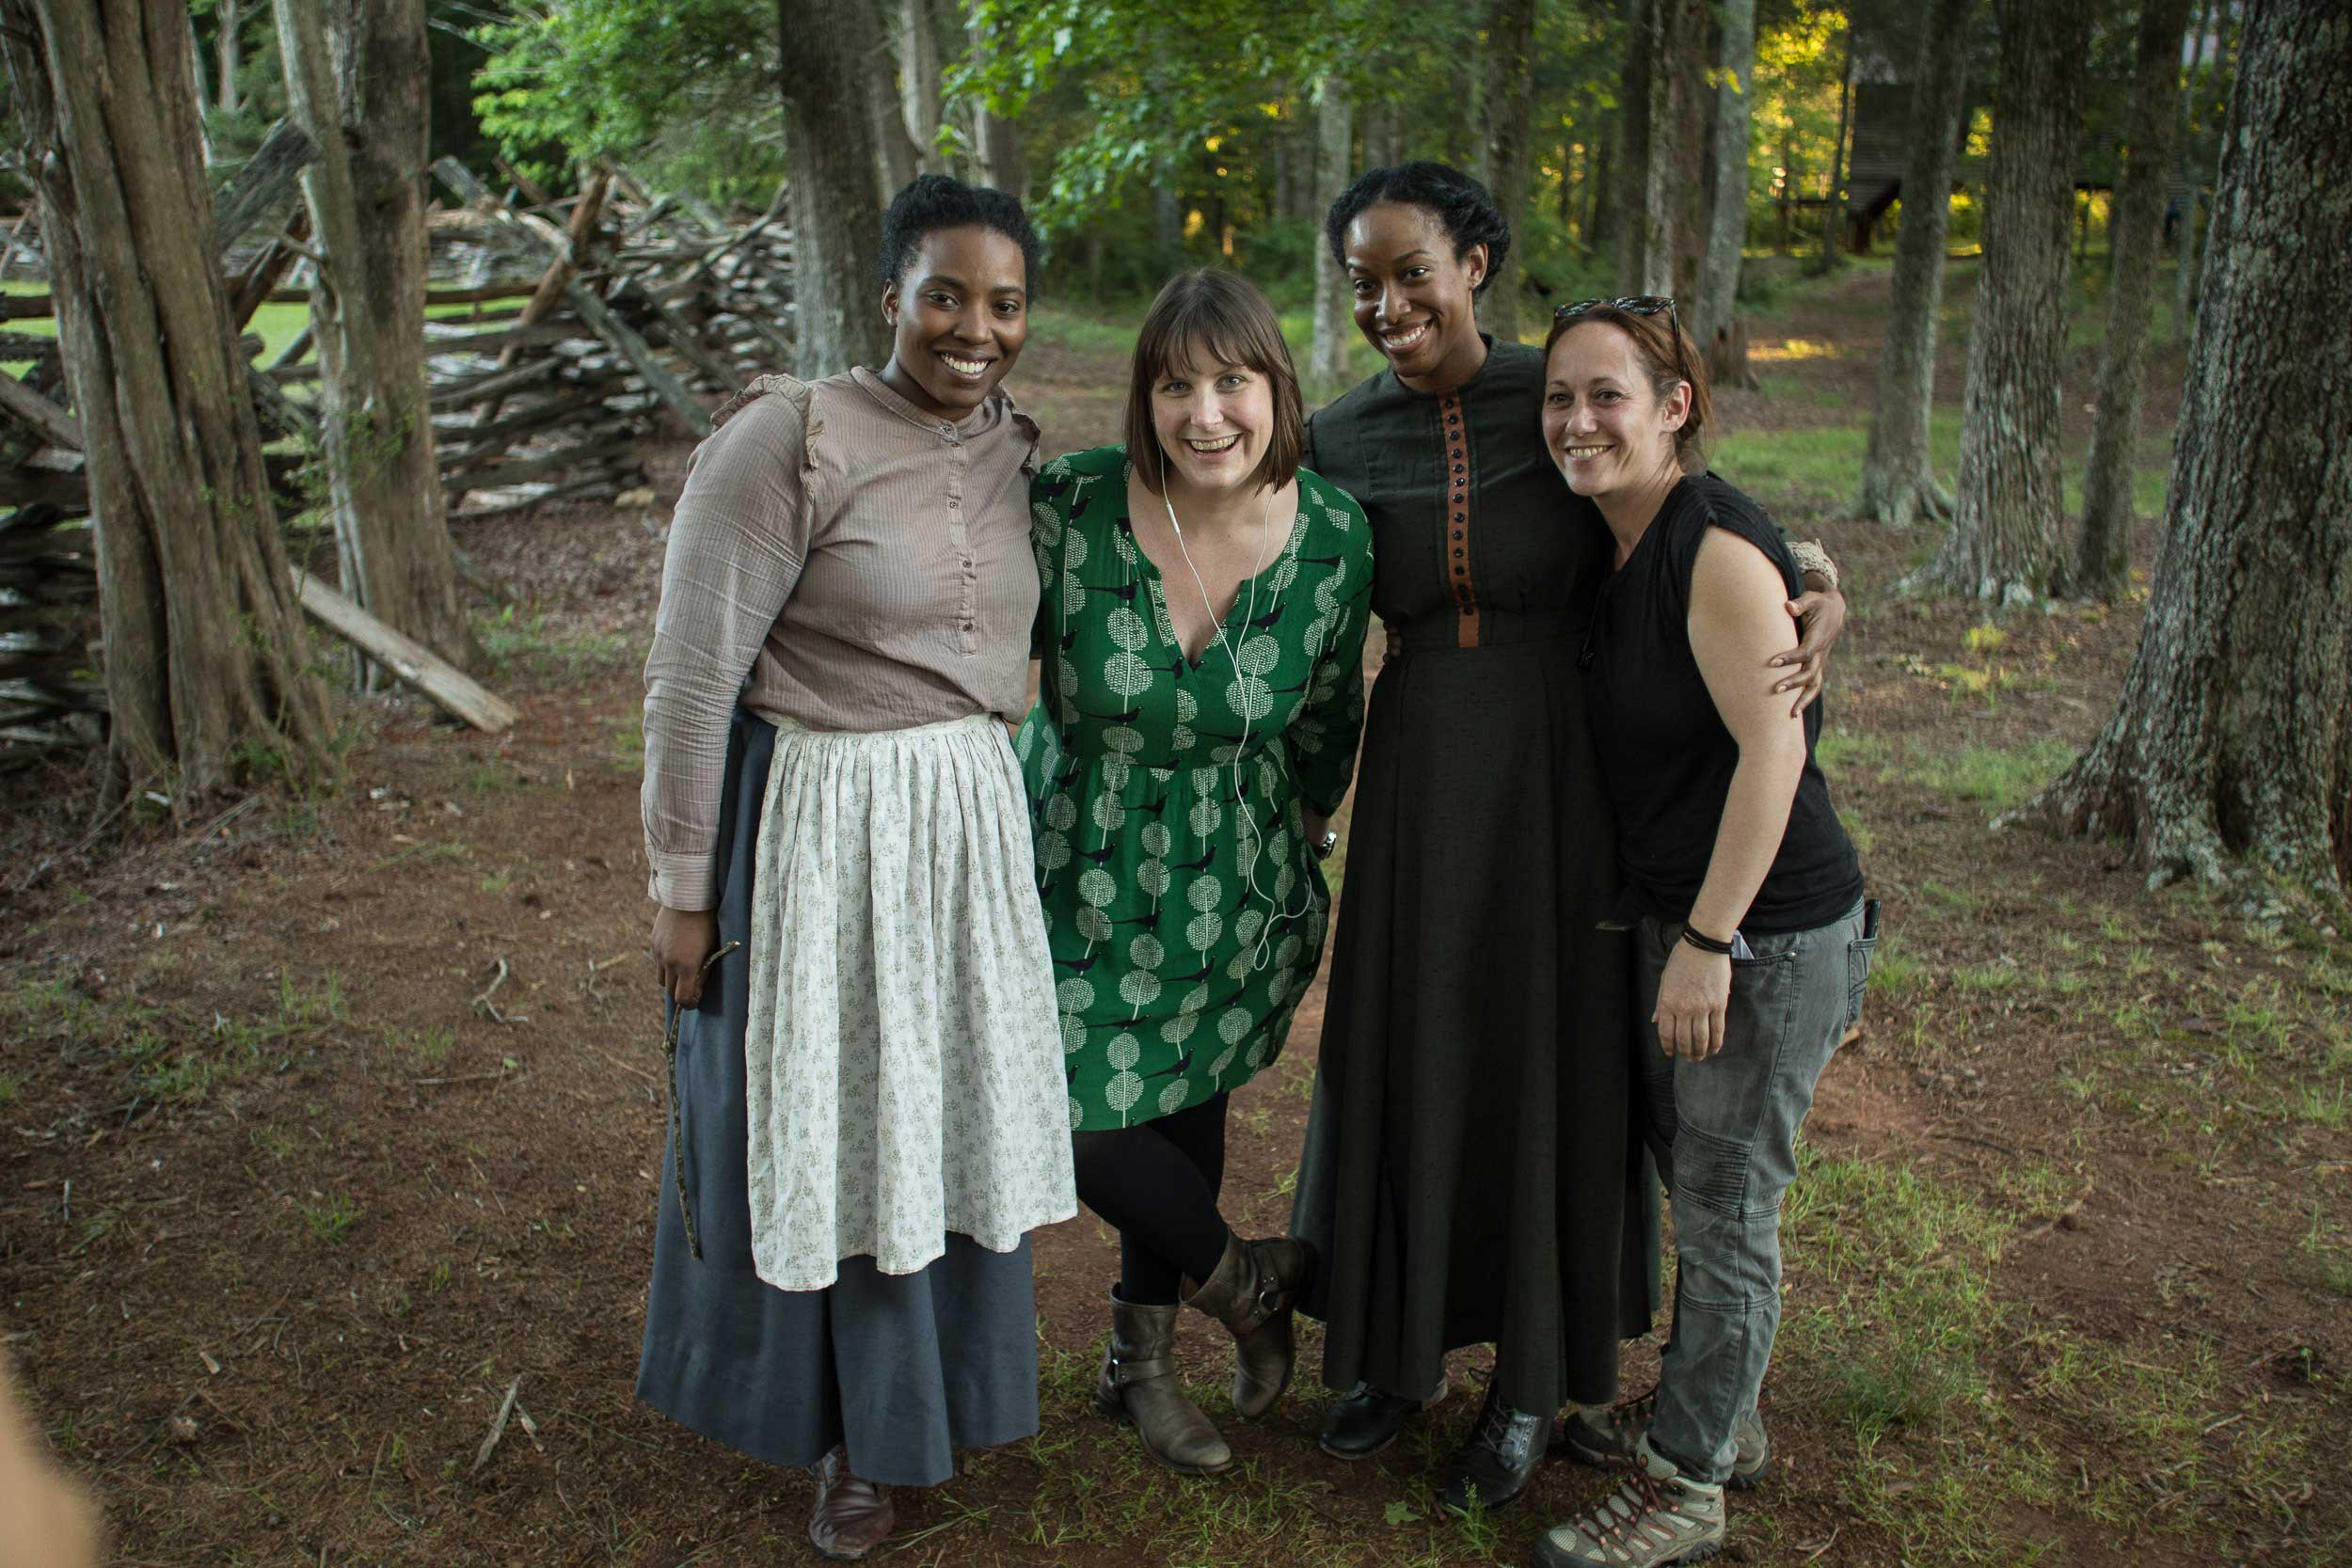 Olivia Washington, Director Ashley Brim Riddle, Mystie Smith, and Kether Abeles